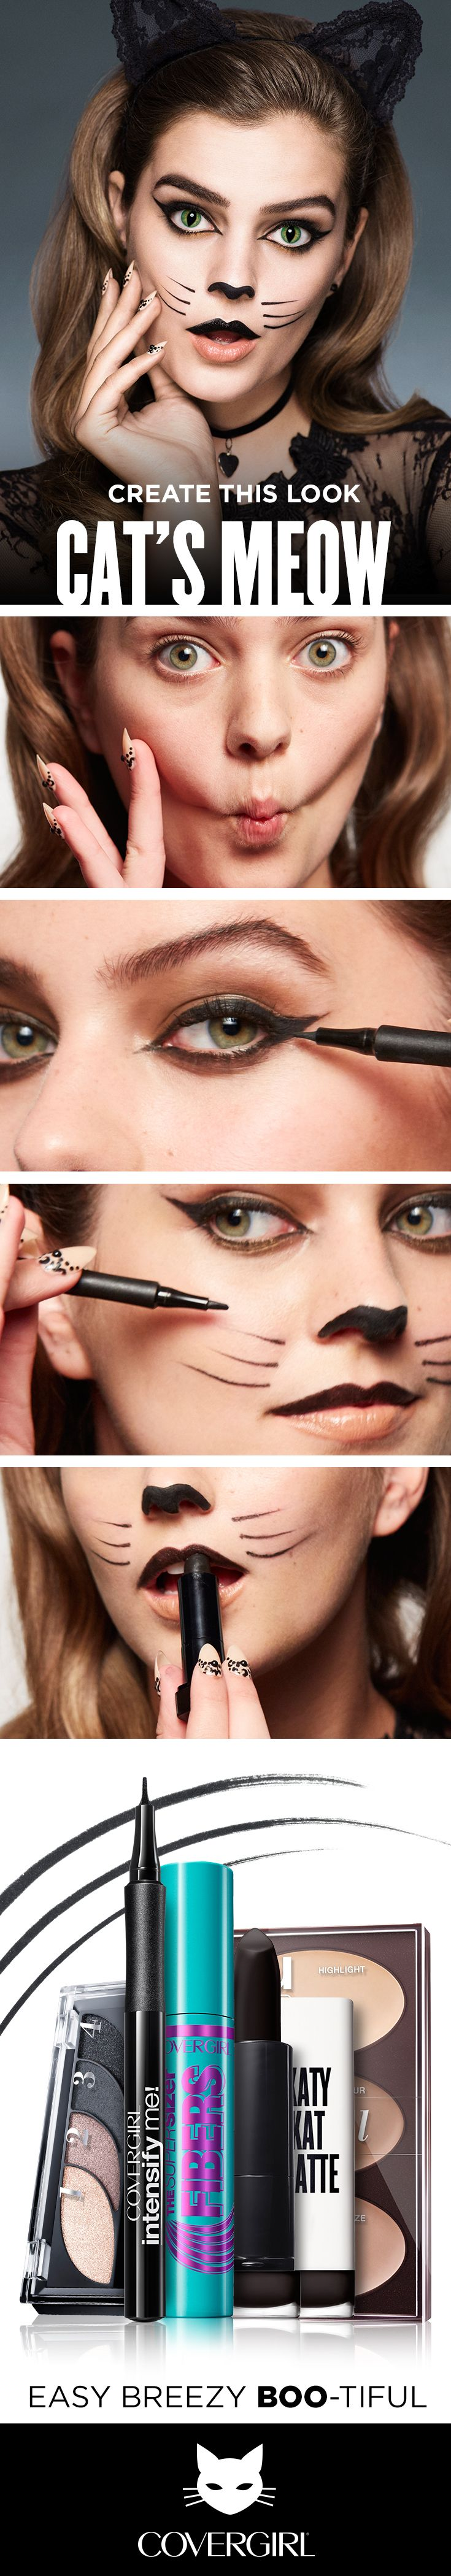 Follow this Halloween DIY Tutorial to create the Spooky Halloween Cat look. Use truBLEND Contour Palette for pretty kitty definition, then play up your eyes with soft, smokey shadow. Use Super Sizer Fibers Mascara for outrageously long lashes. Next, use Intensify Me! Eyeliner to create dramatic Cat's eyes and draw on a cute nose and whiskers. Finish the look with Katy Kat Matte Lipstick in Perry Panther on your upper lip only. Easy, Breezy, Boo-tiful!